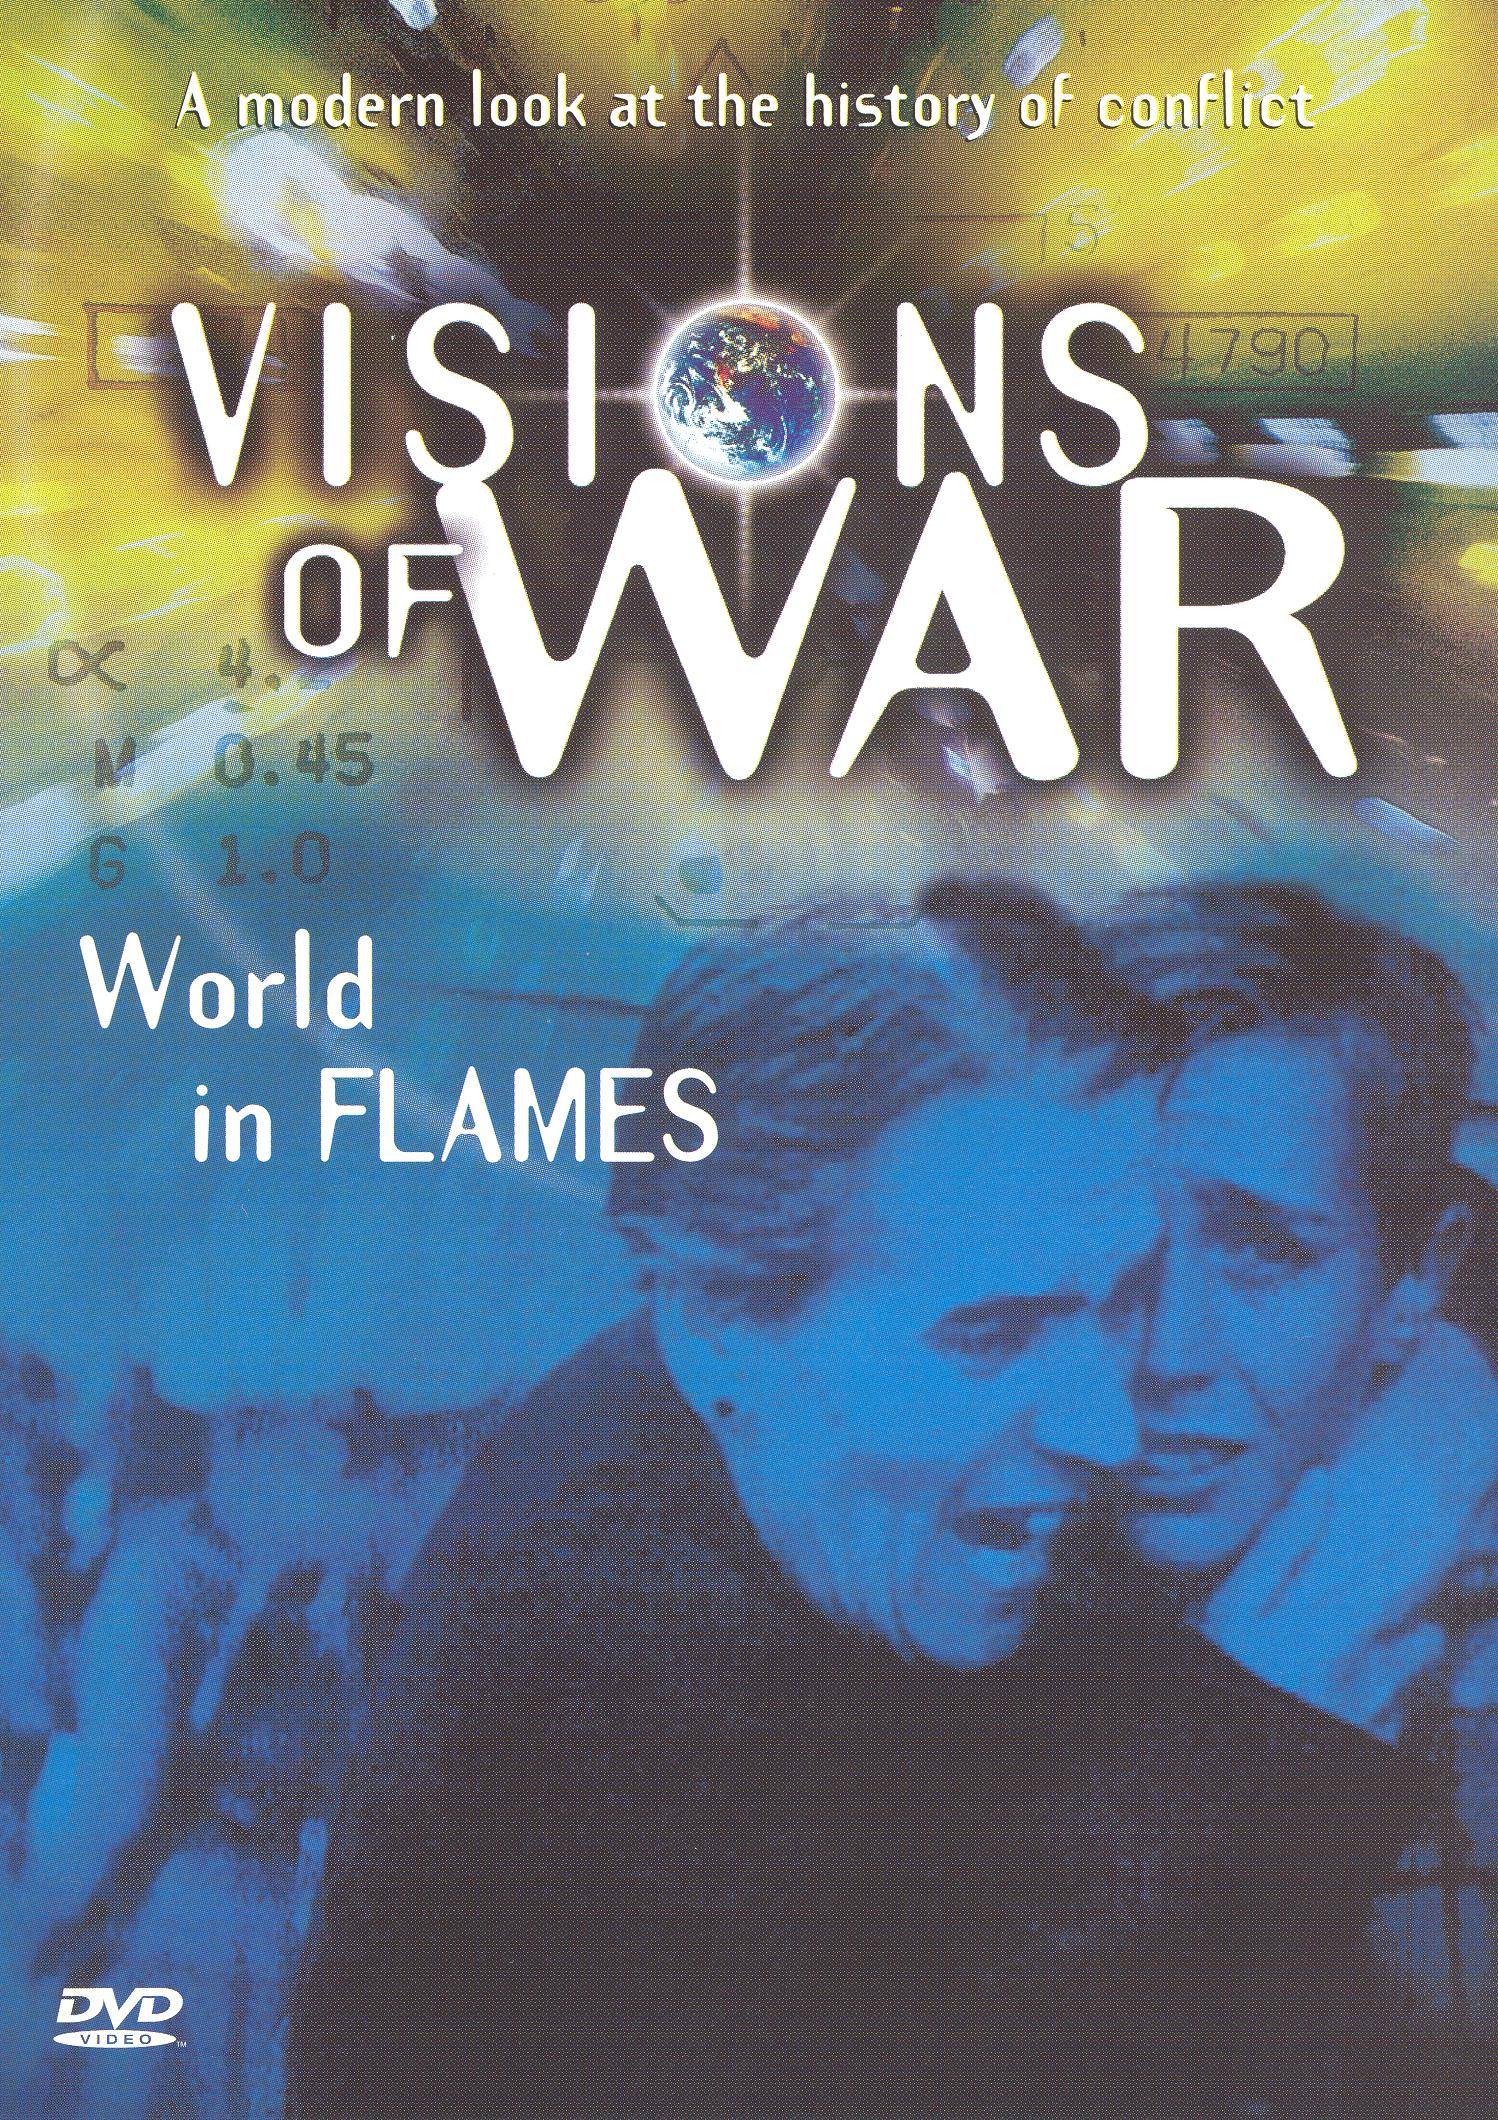 Visions of War: A Modern Look at the History of Conflict - World in Flames